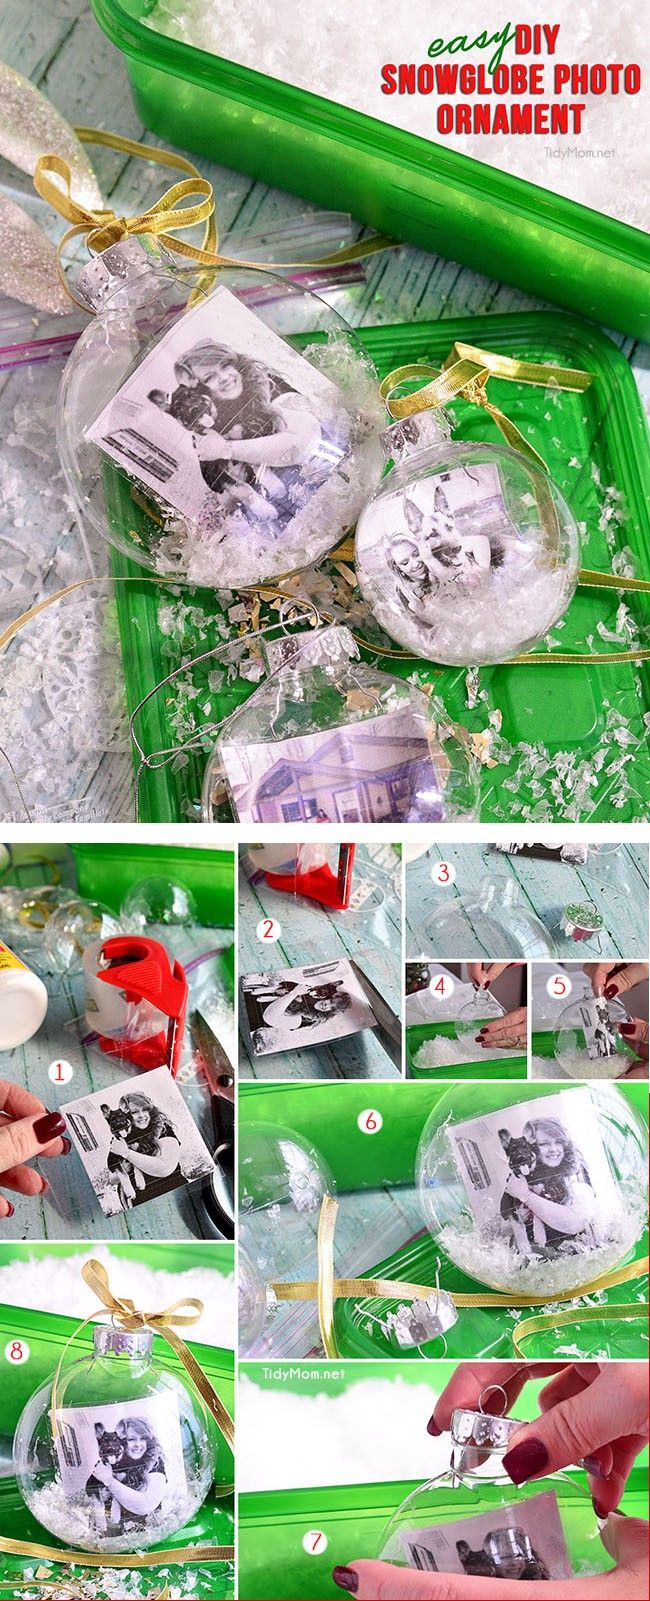 Homemade Snowglobe Photo Ornament is a fun easy project and will make a wonderful personalized gift, addition to any tree or tie one onto a gift for extra special gift wrapping. Full tutorial at TidyMom.net